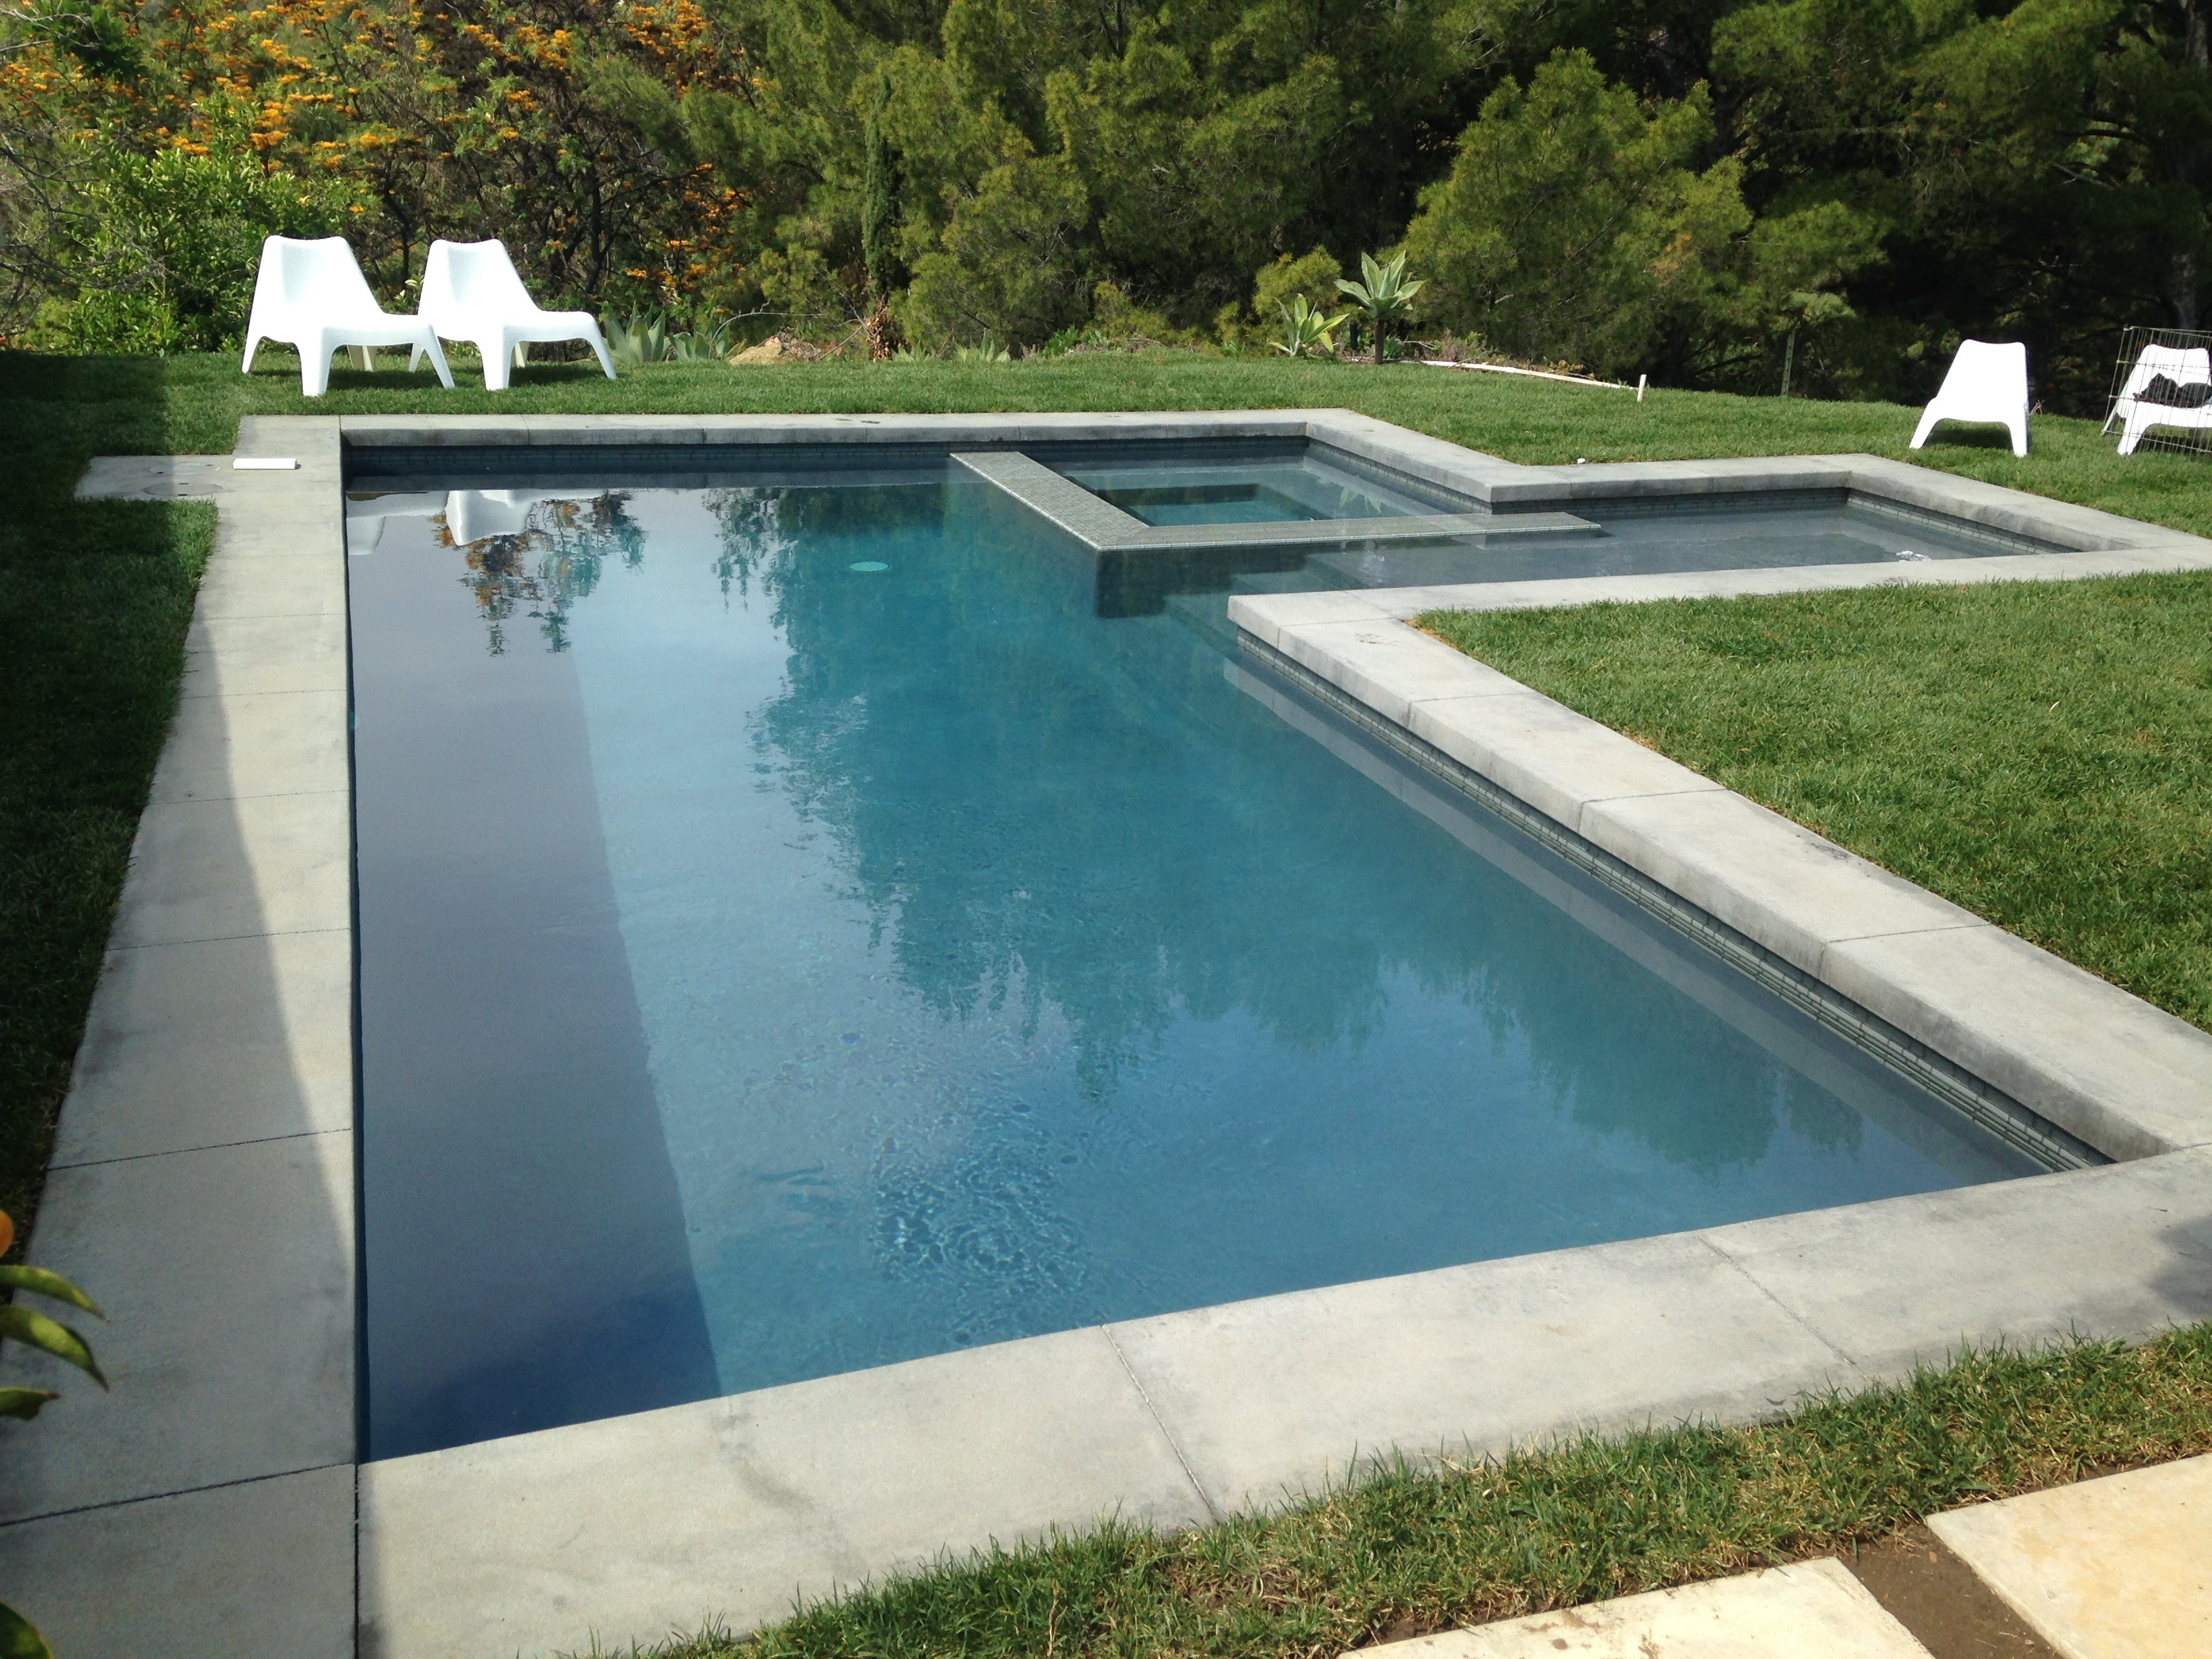 Spa and Pool with Modern Coping